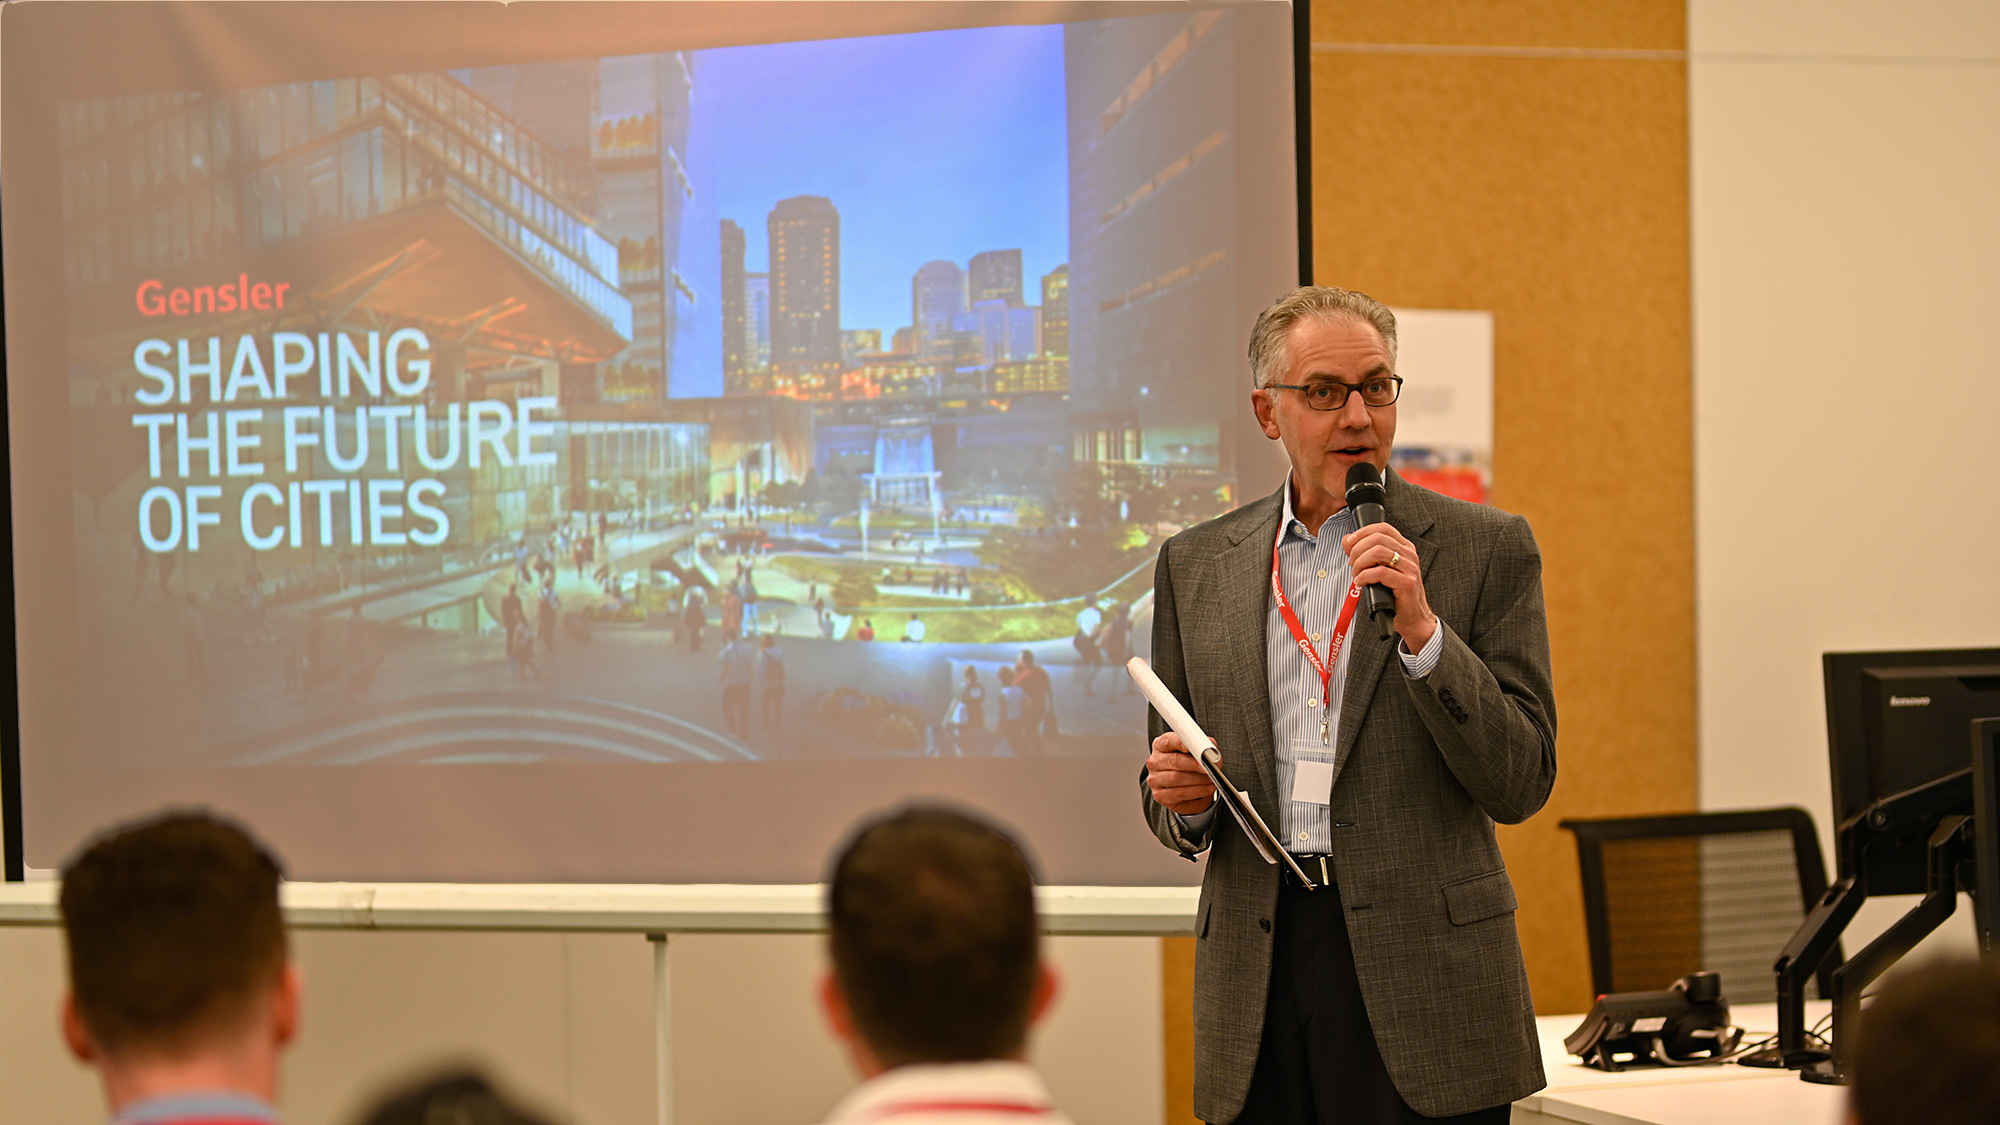 Gensler's David Calkins delivered the keynote speech